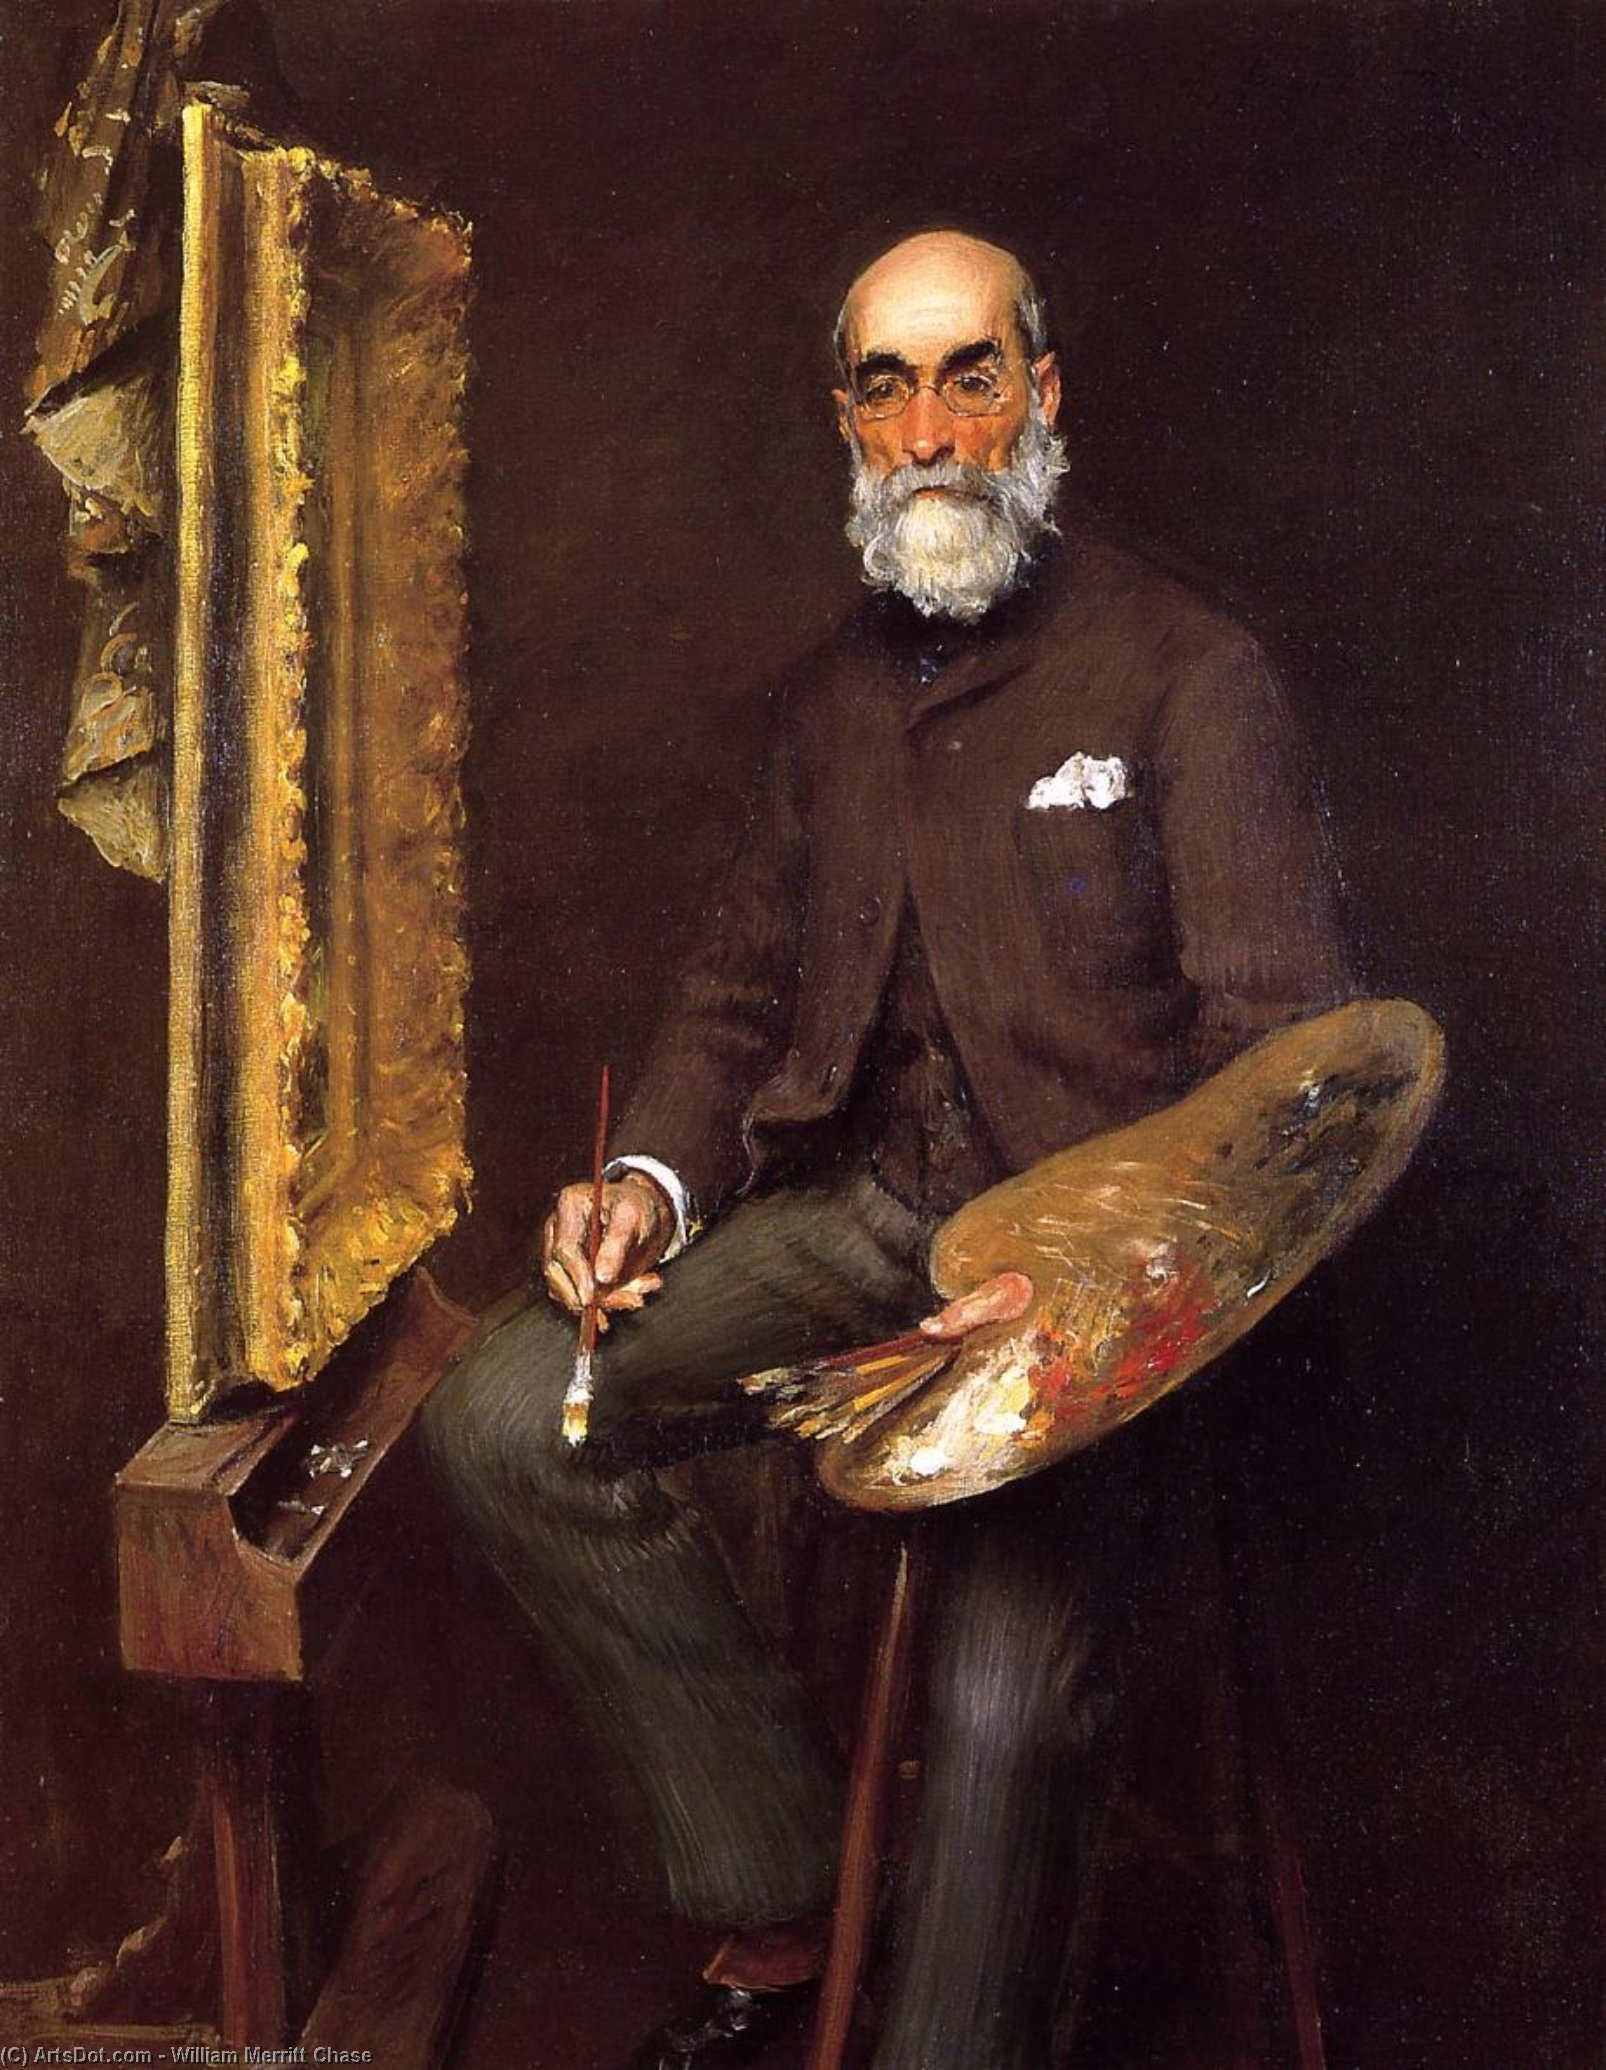 Portrait de Worthington Whittredge, huile sur toile de William Merritt Chase (1849-1916, United States)